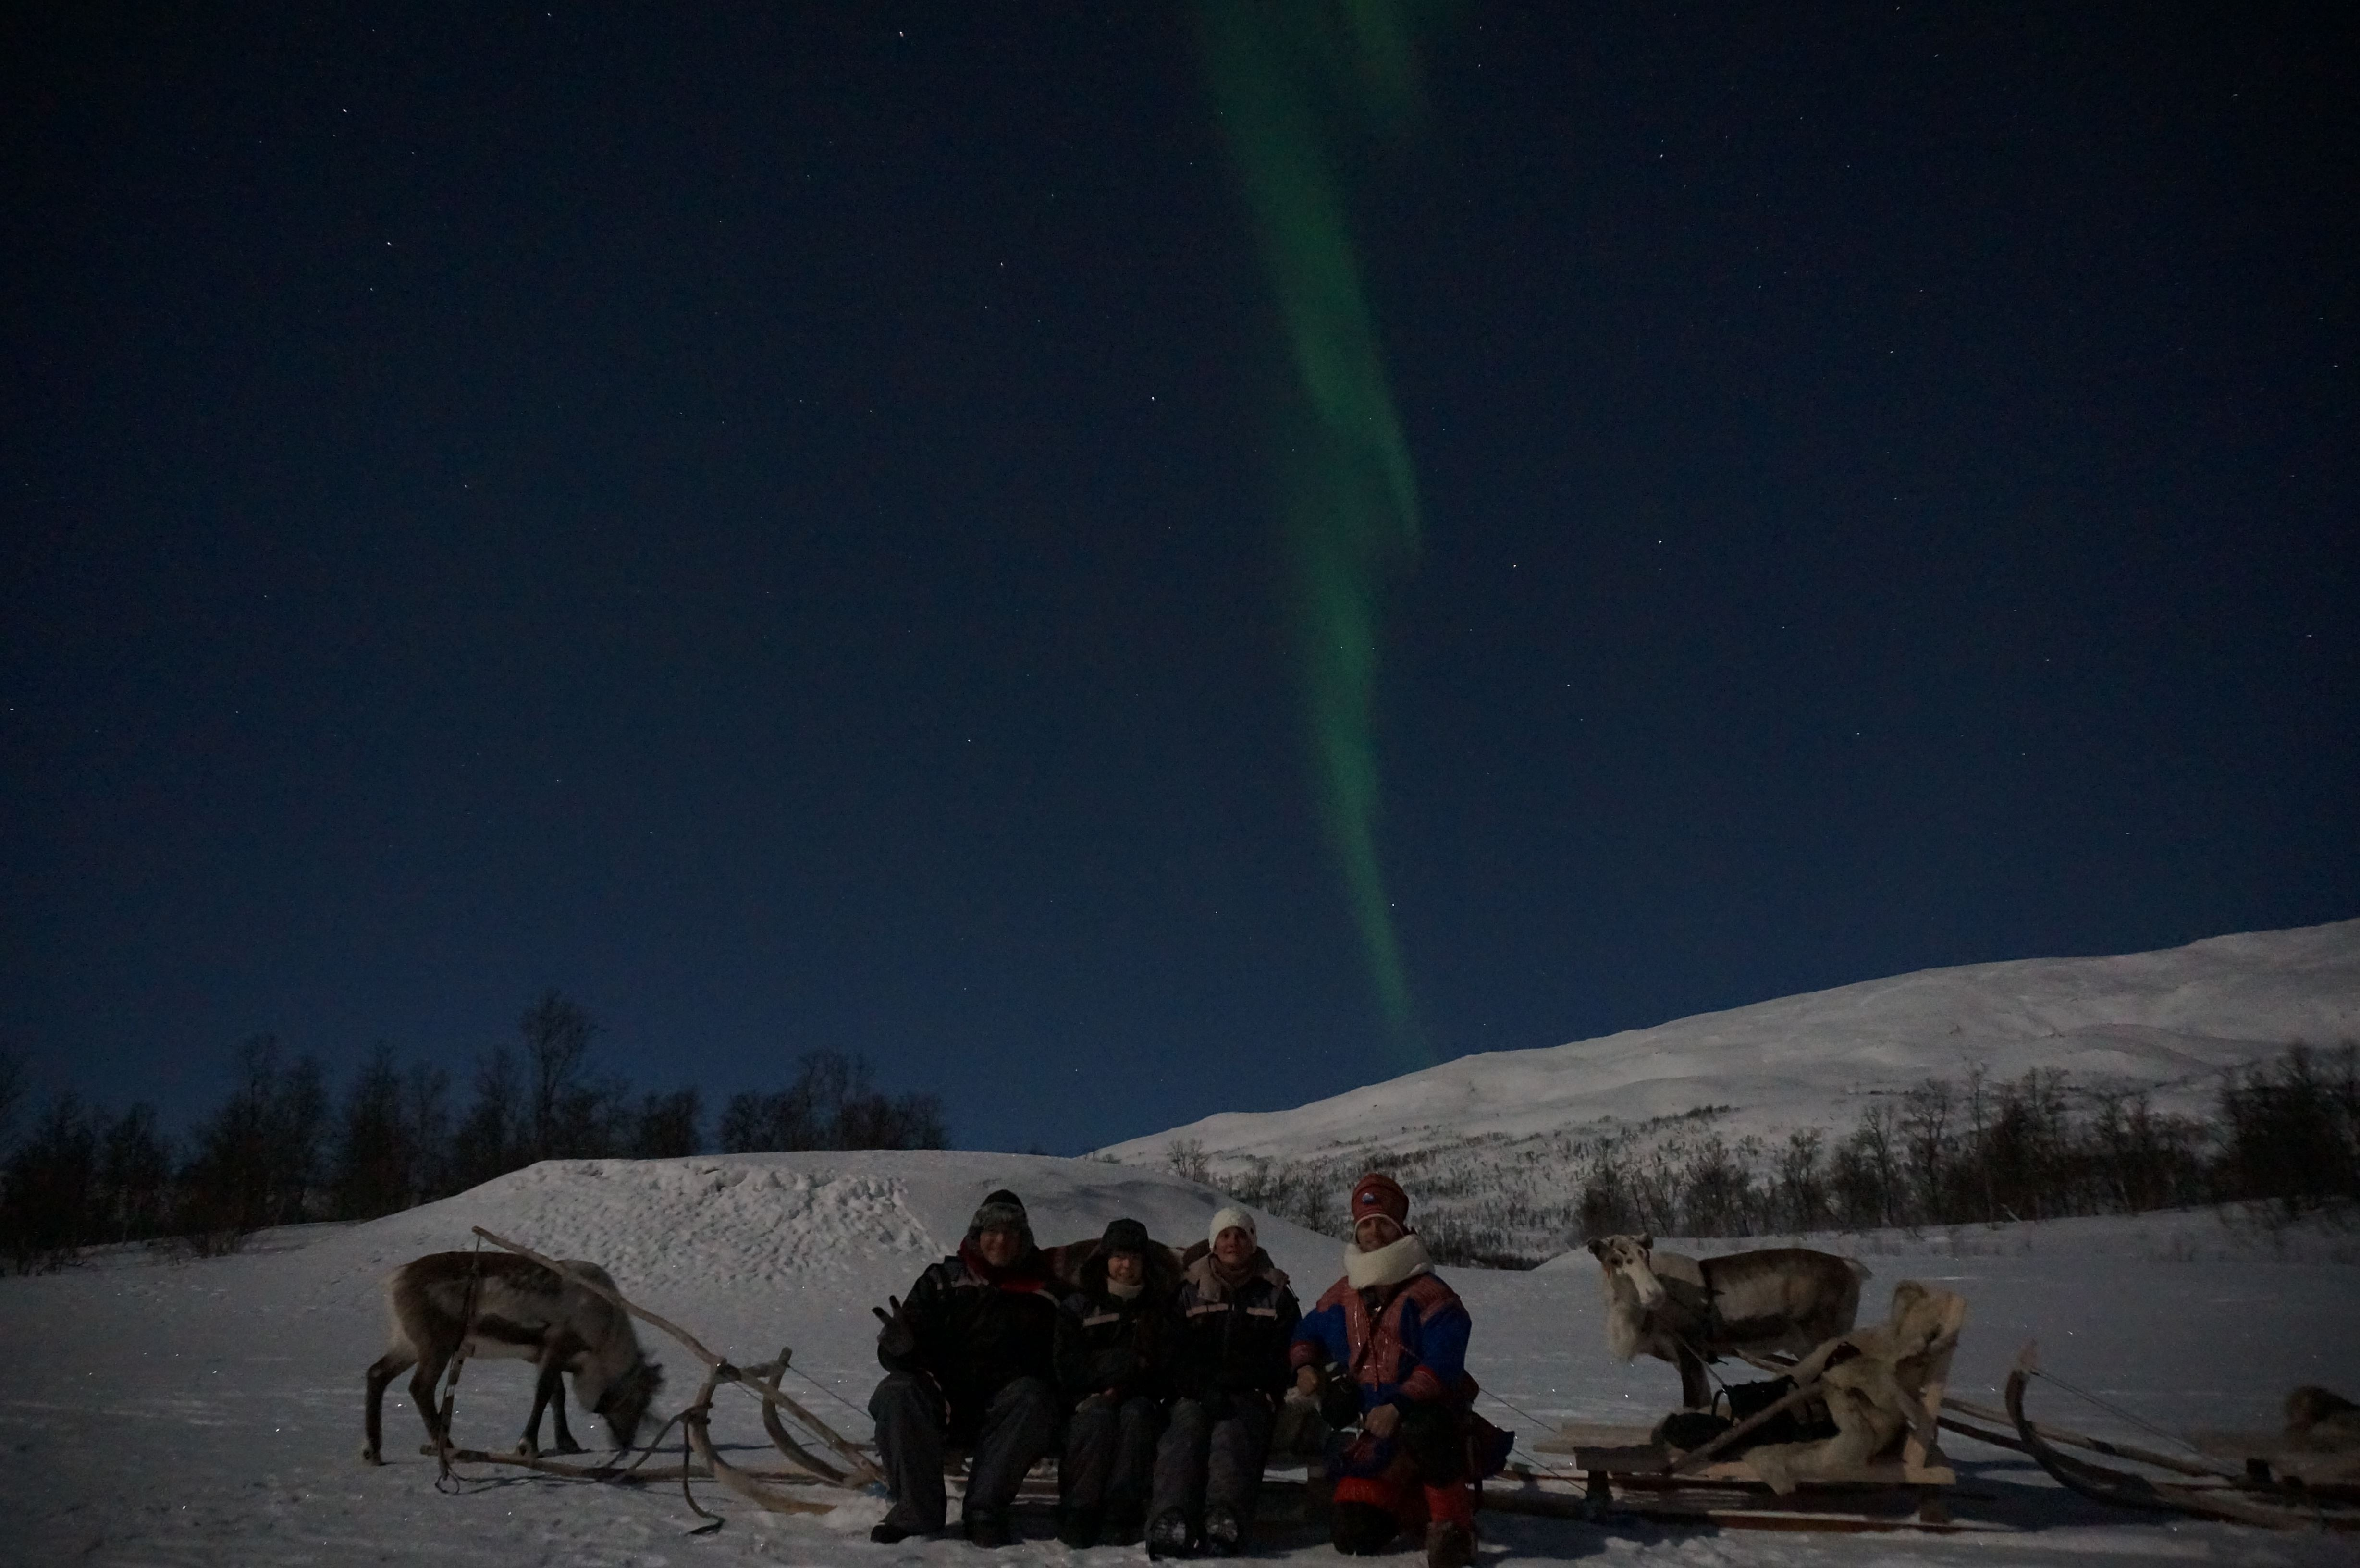 Reindeer Sledding and Northern Lights – Tromsø Lapland